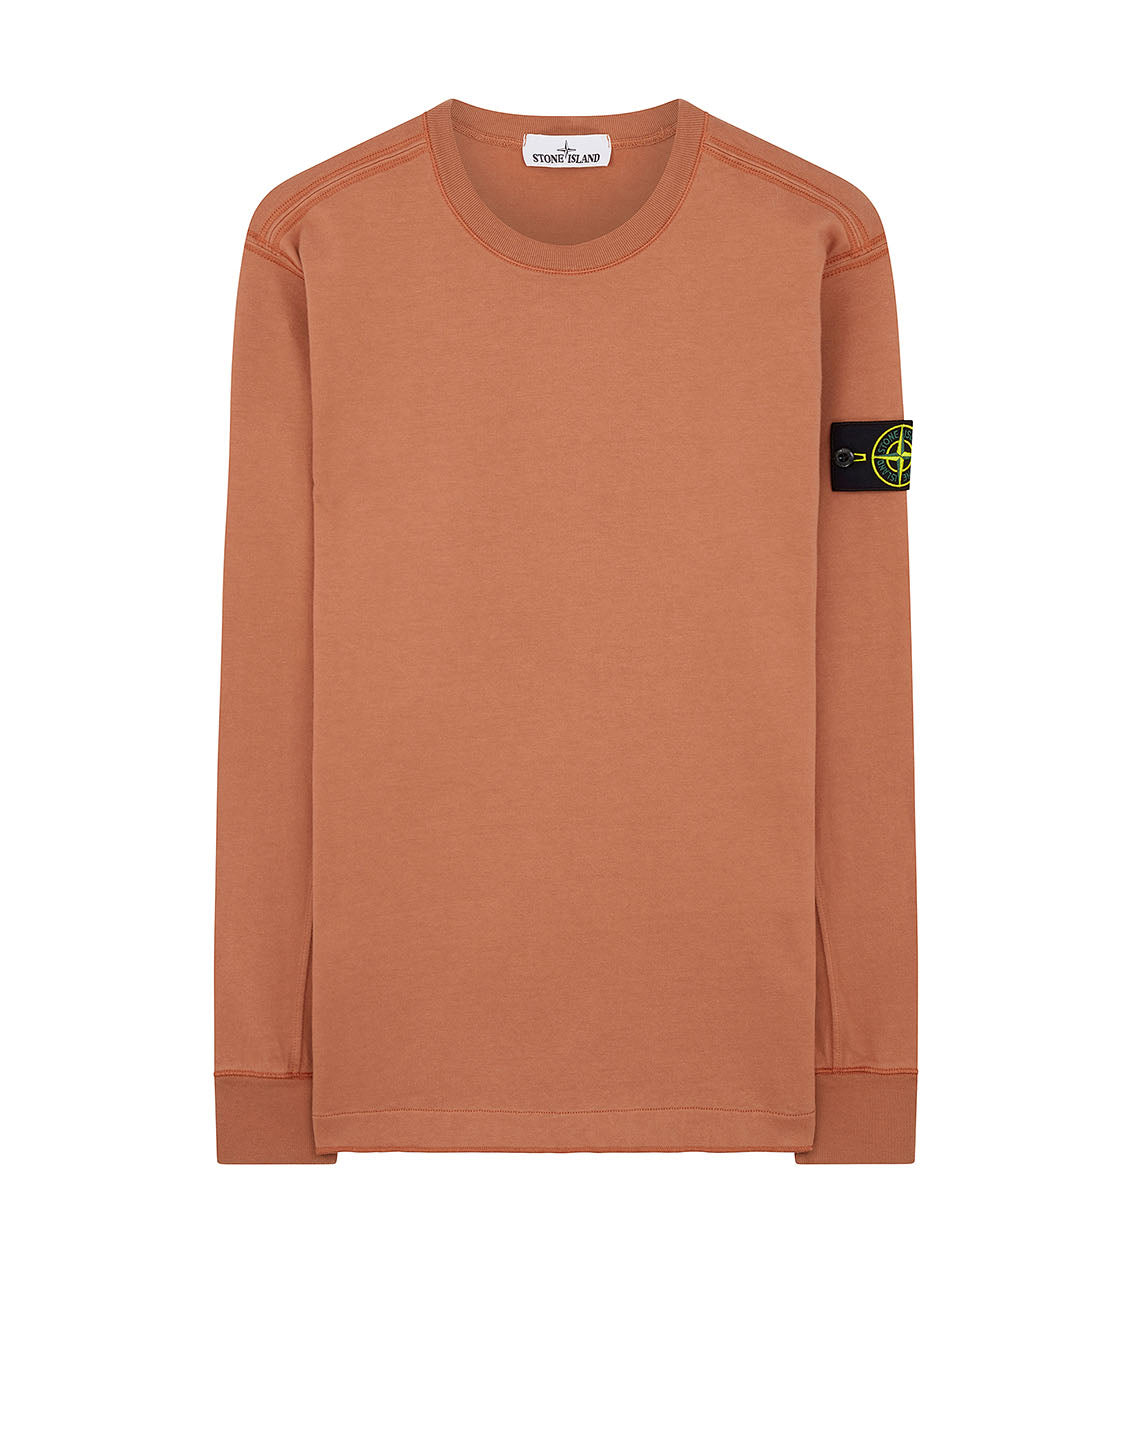 62350 Crewneck Sweatshirt in Rust